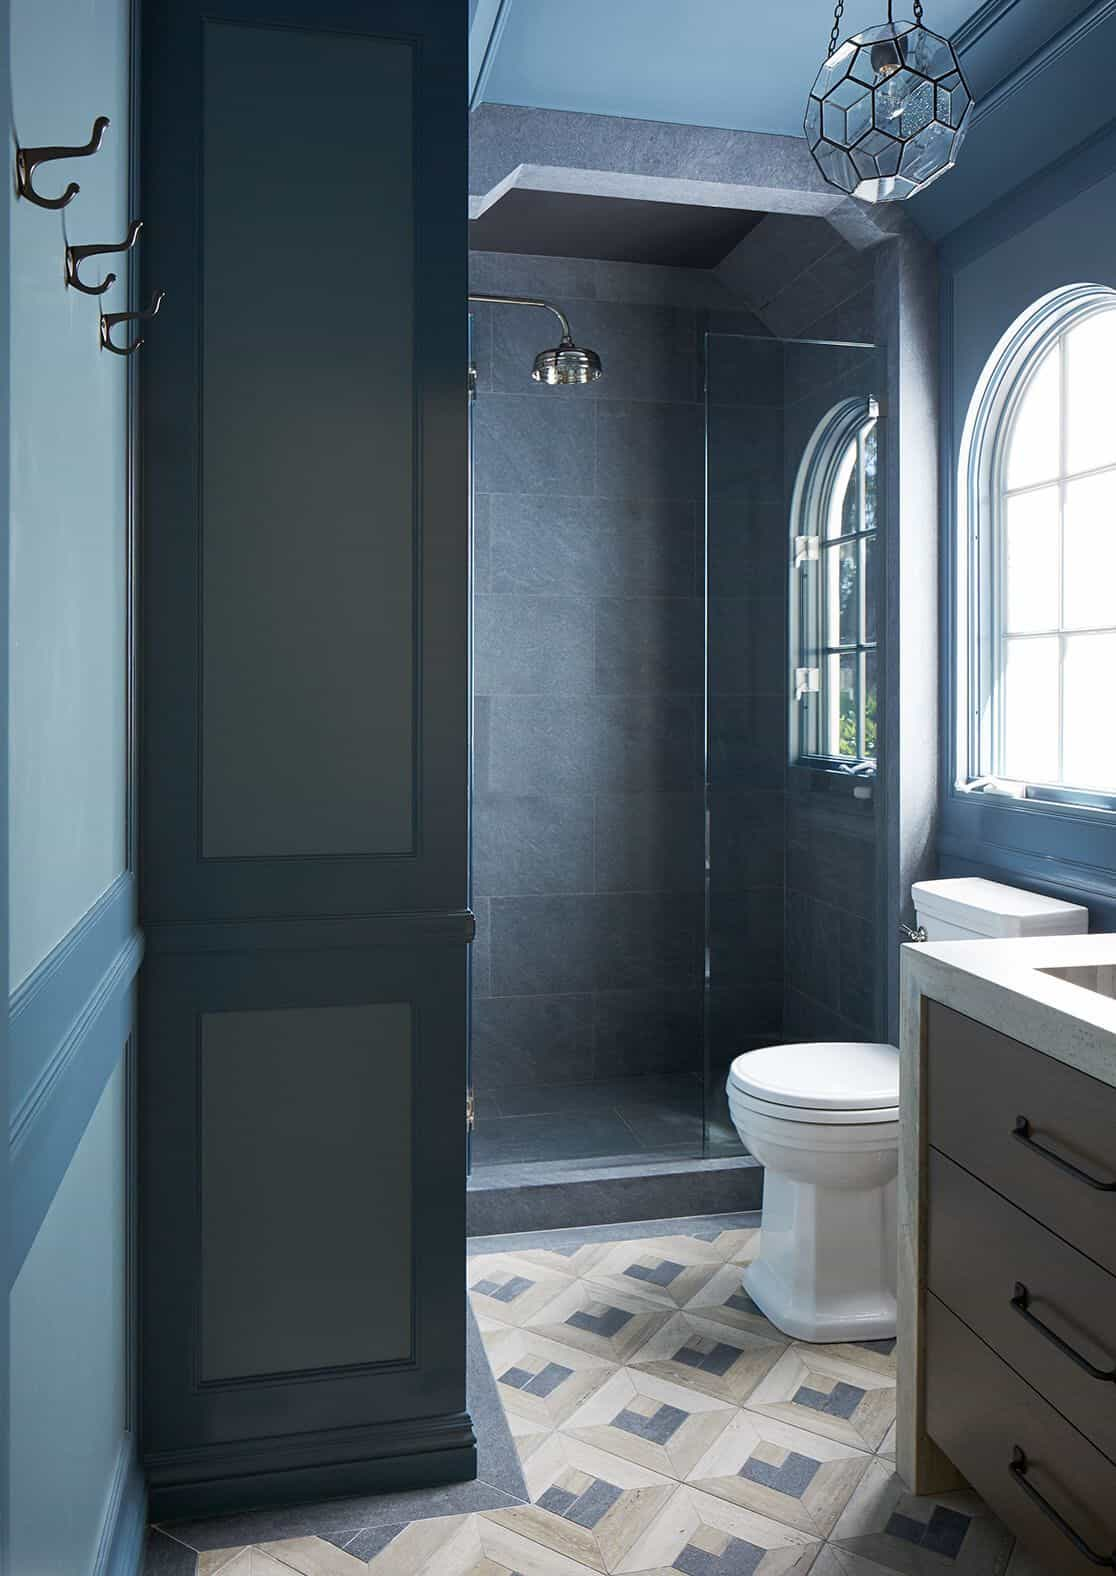 paneled wall bathroom